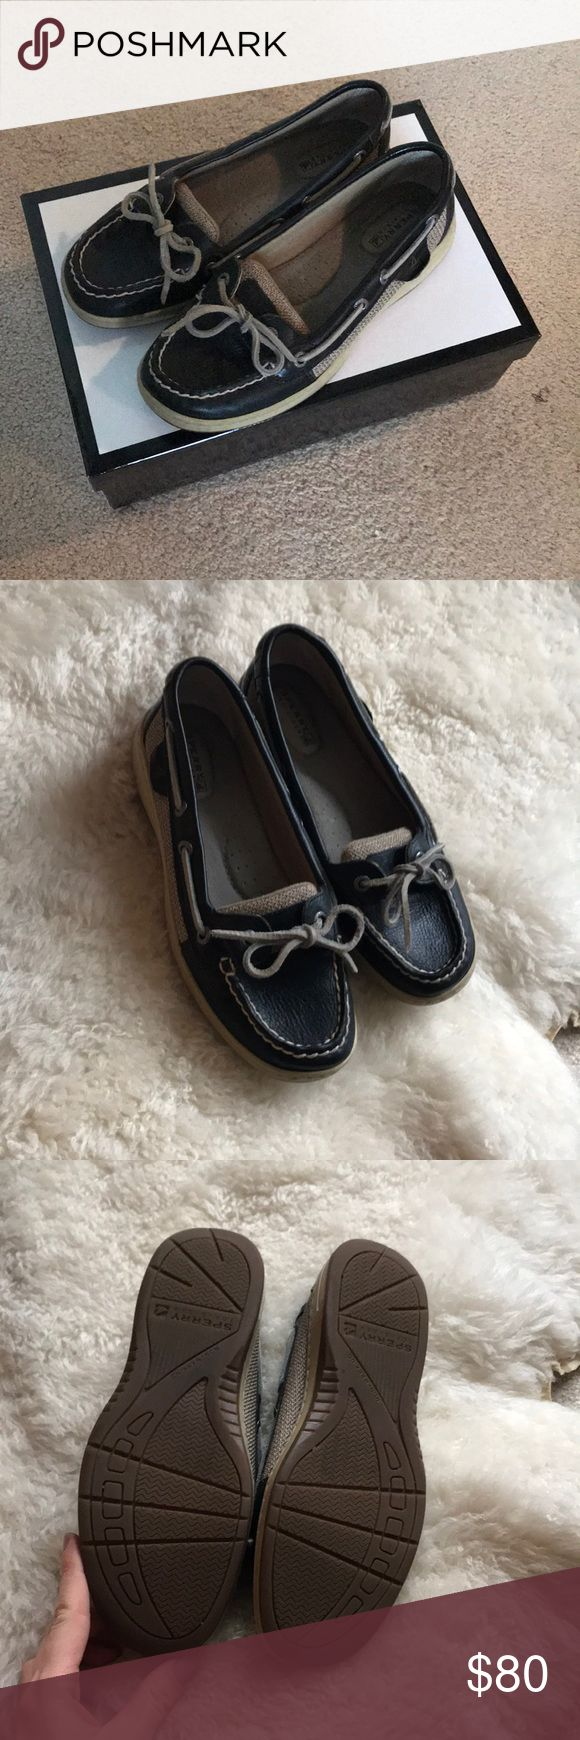 Sperry black boat shoes These like new black leather boat shoes are your new favorite shoe! Worn once and were too small. Sperry Top-Sider Shoes Flats & Loafers